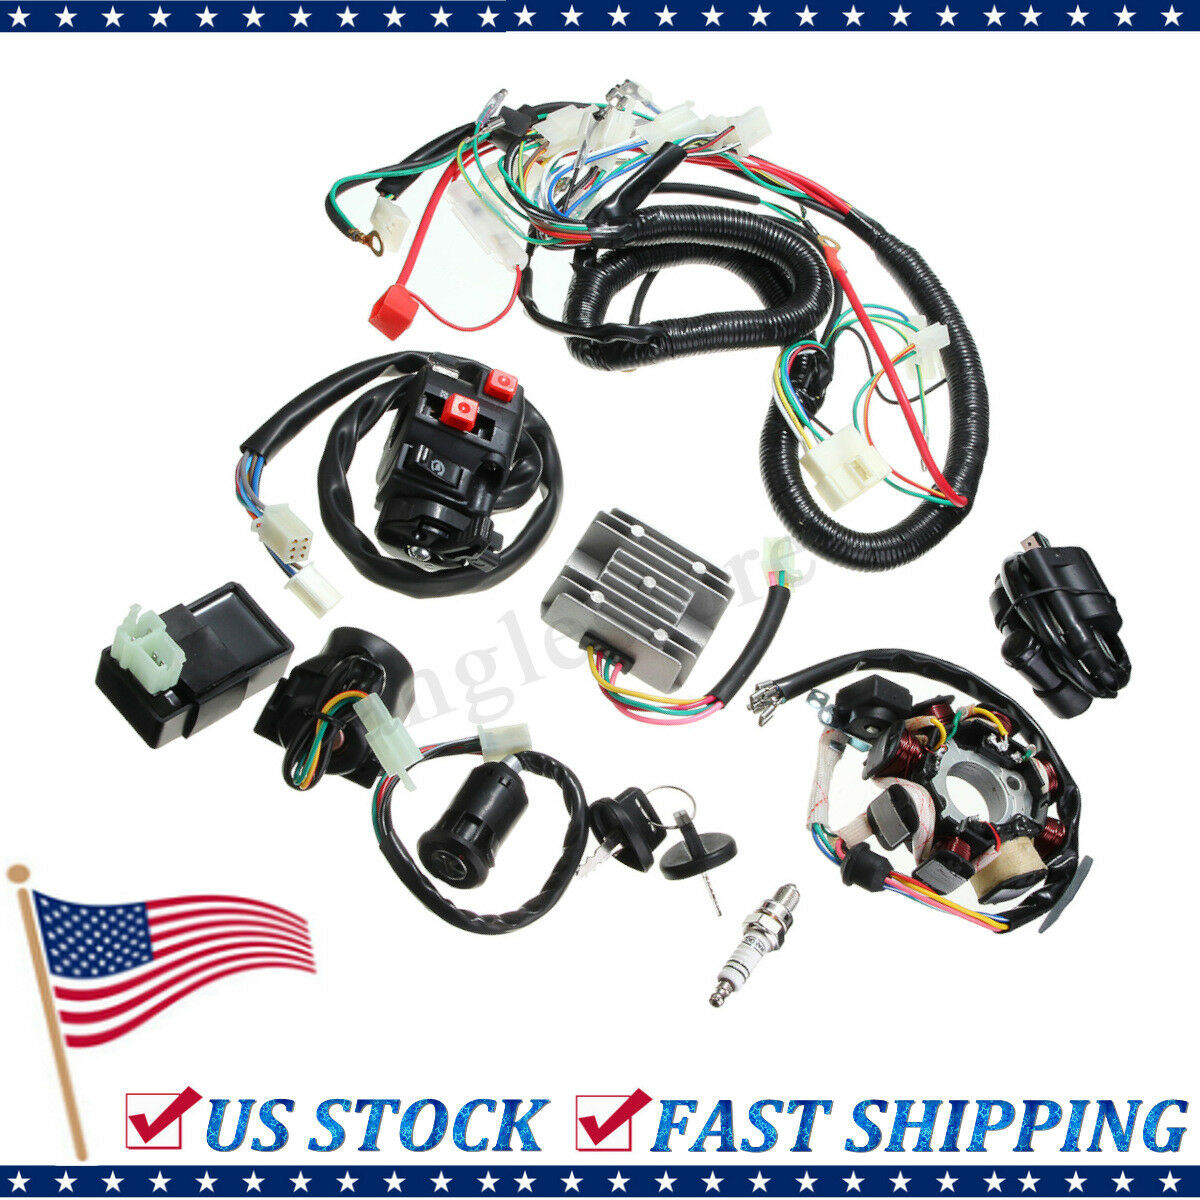 Electrics Wiring Harness Wire Loom Atv Quad 125 150 200 250cc Stator Lifan 125cc Motor 1 Of 12free Shipping